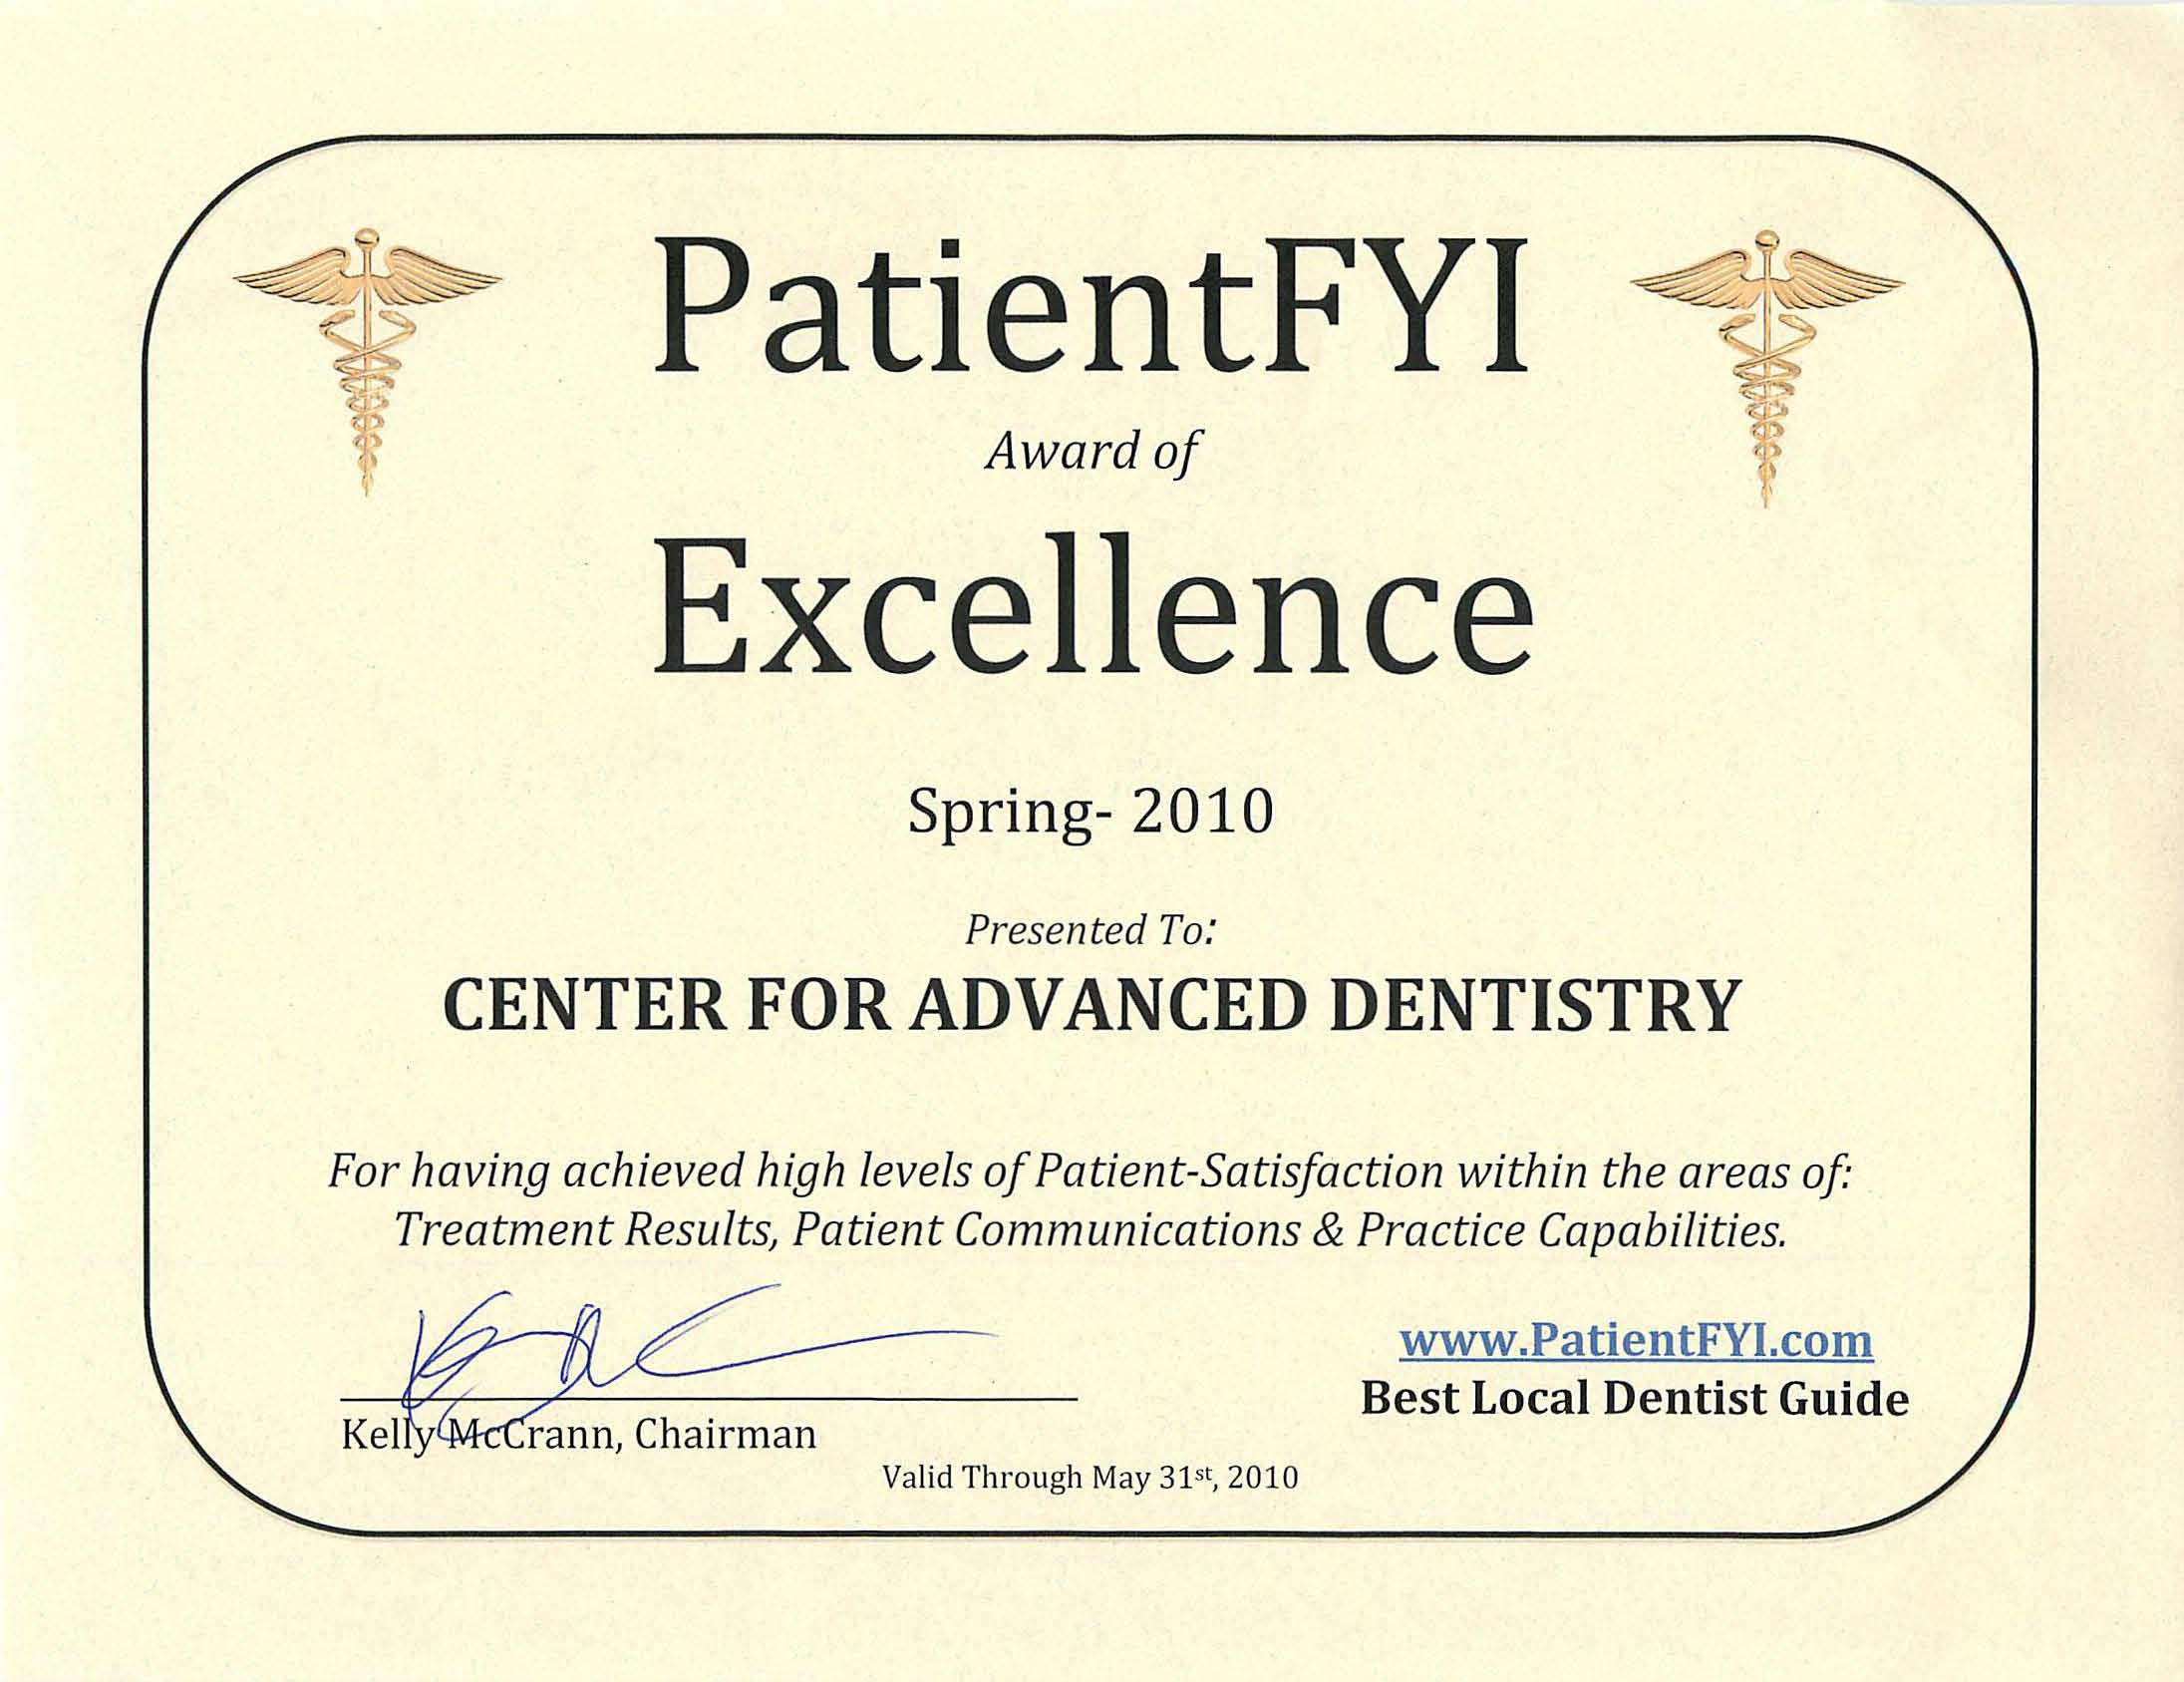 Center for advanced dentistry receives patientfyi award of dr ushma patel is a dentist in atlanta suwanee johns creek patient fyi award of excellence certificate thecheapjerseys Image collections